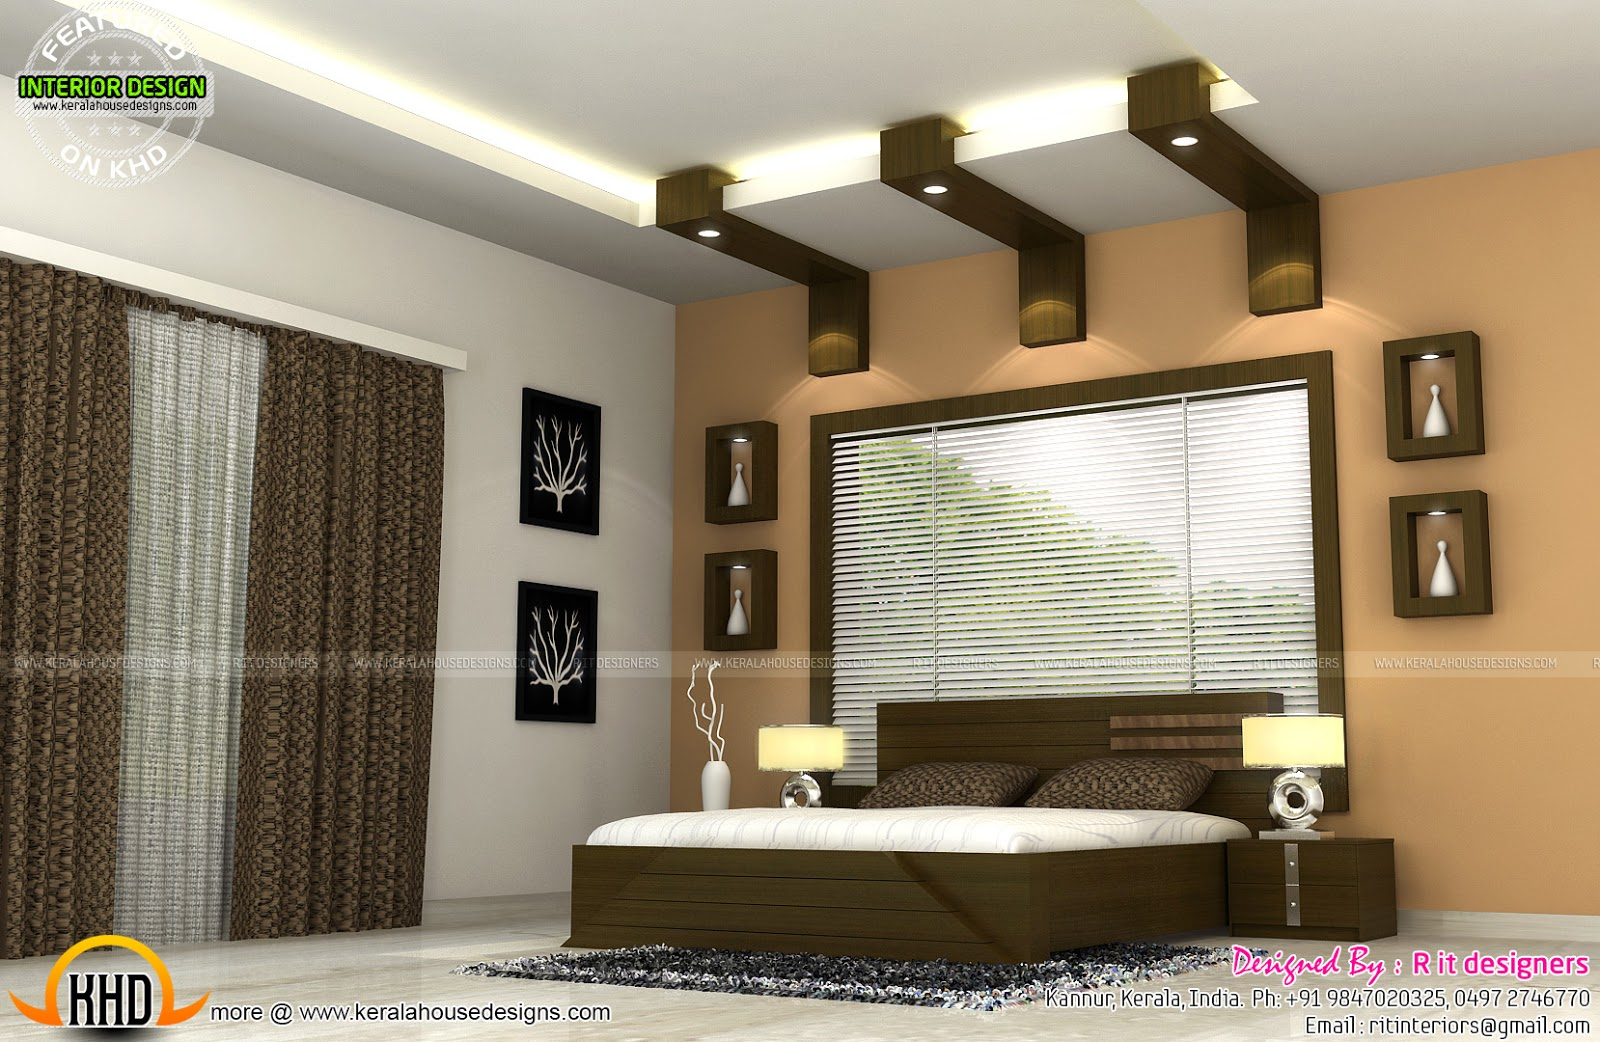 Interiors of bedrooms and kitchen kerala home design and for Decorating sites